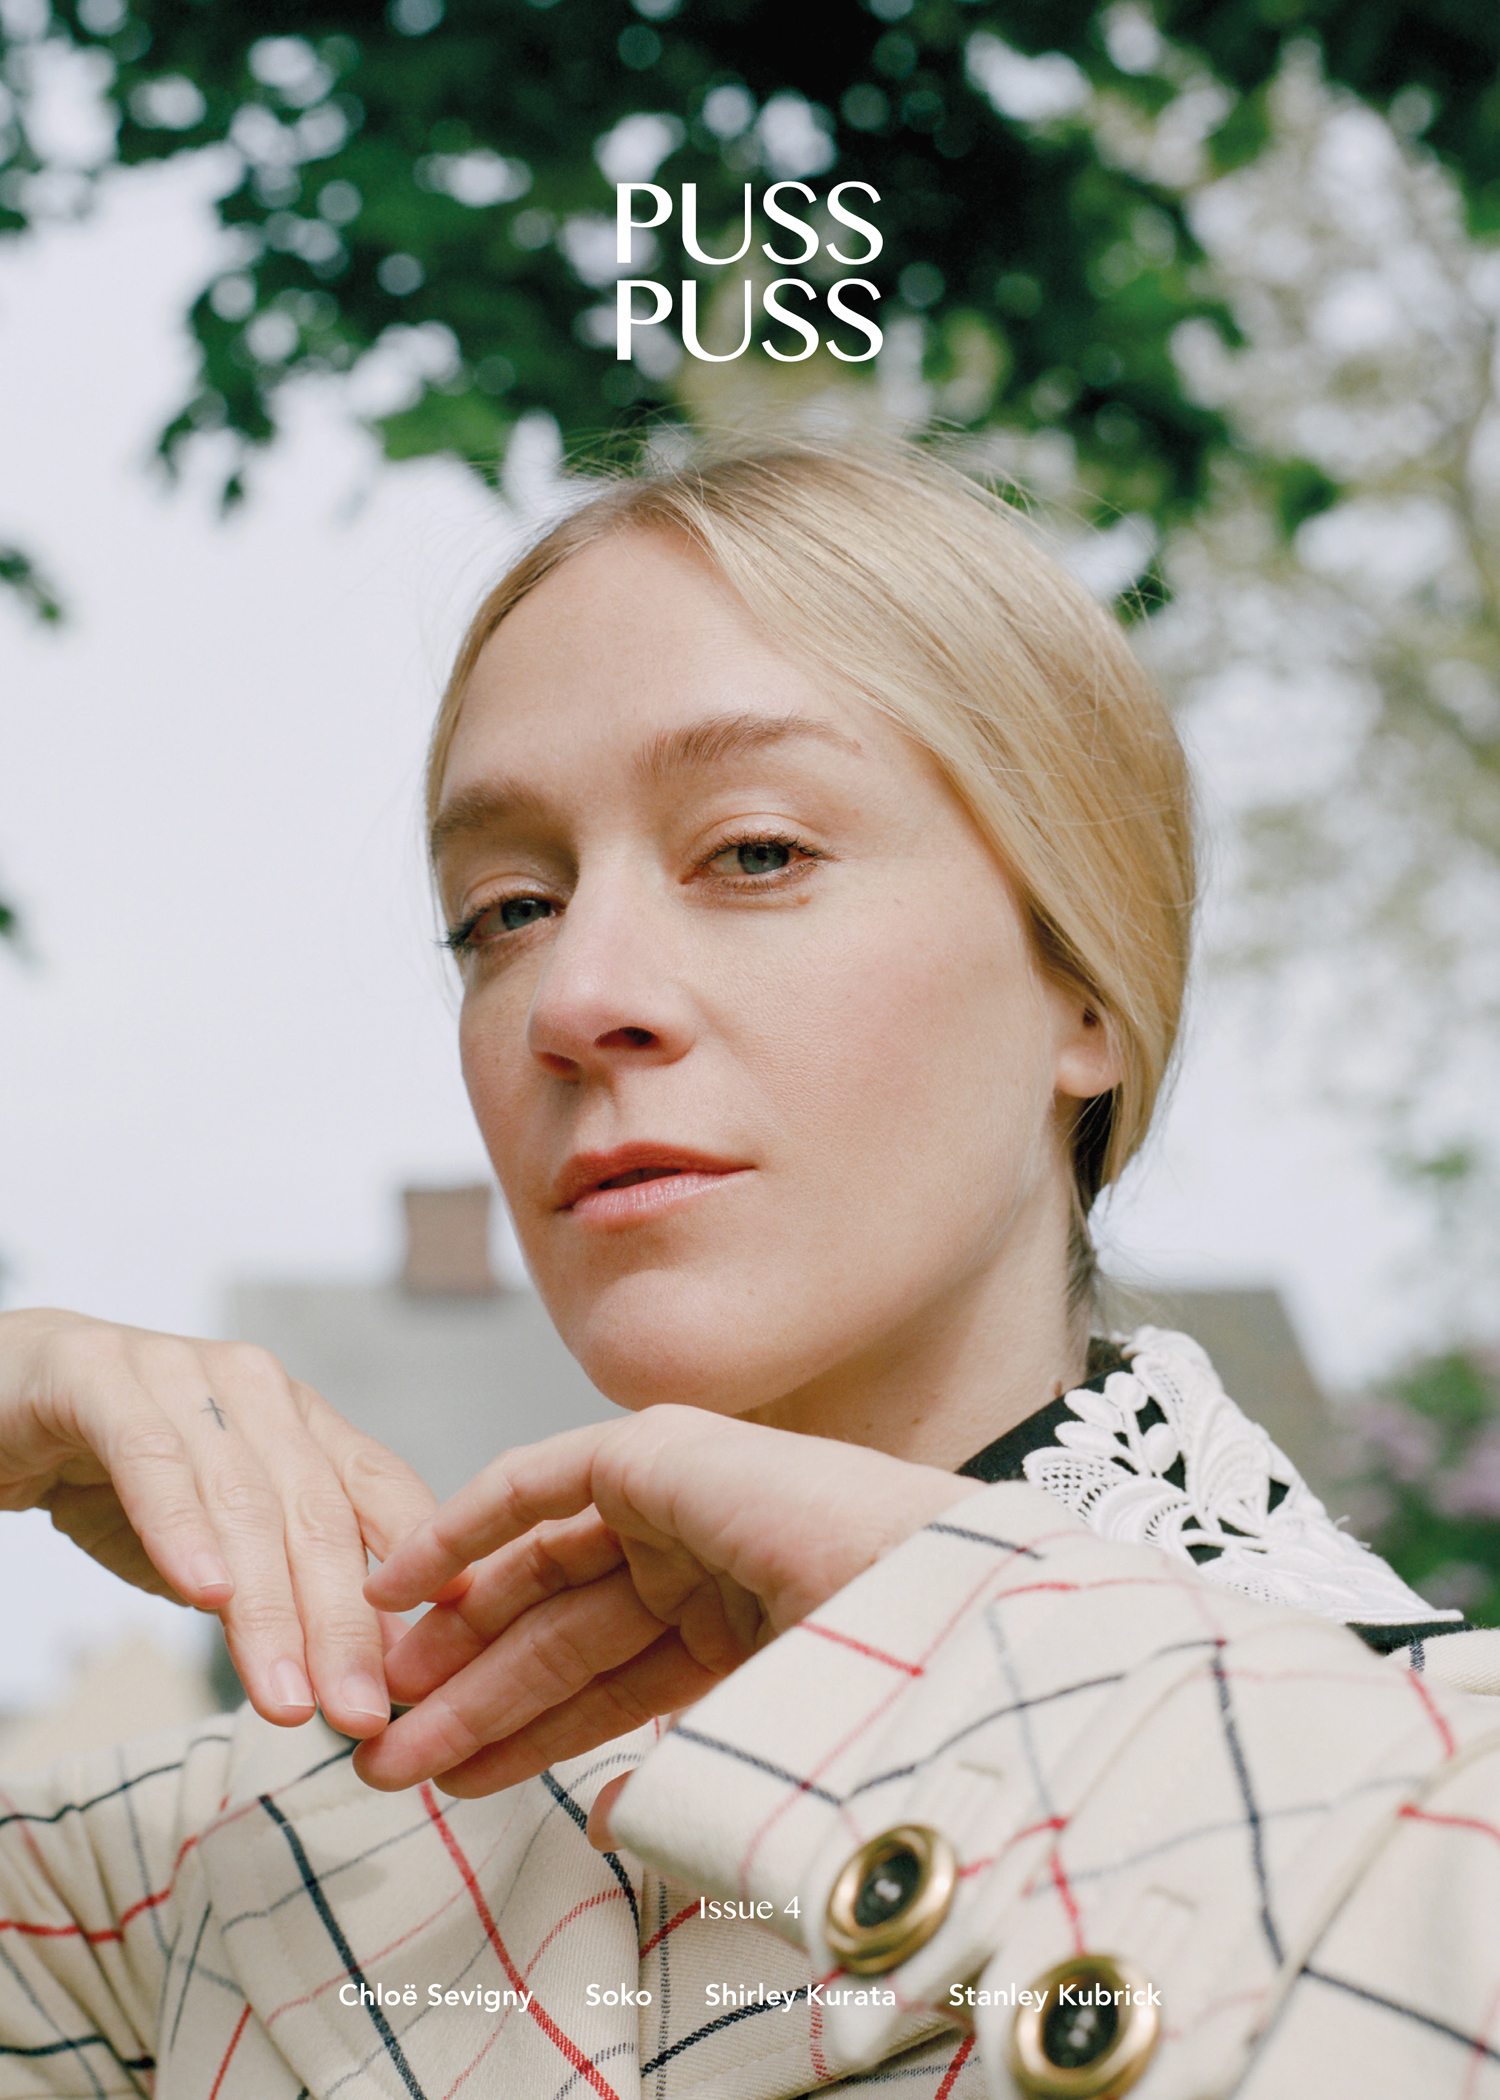 PUSS PUSS Magazine Issue 04